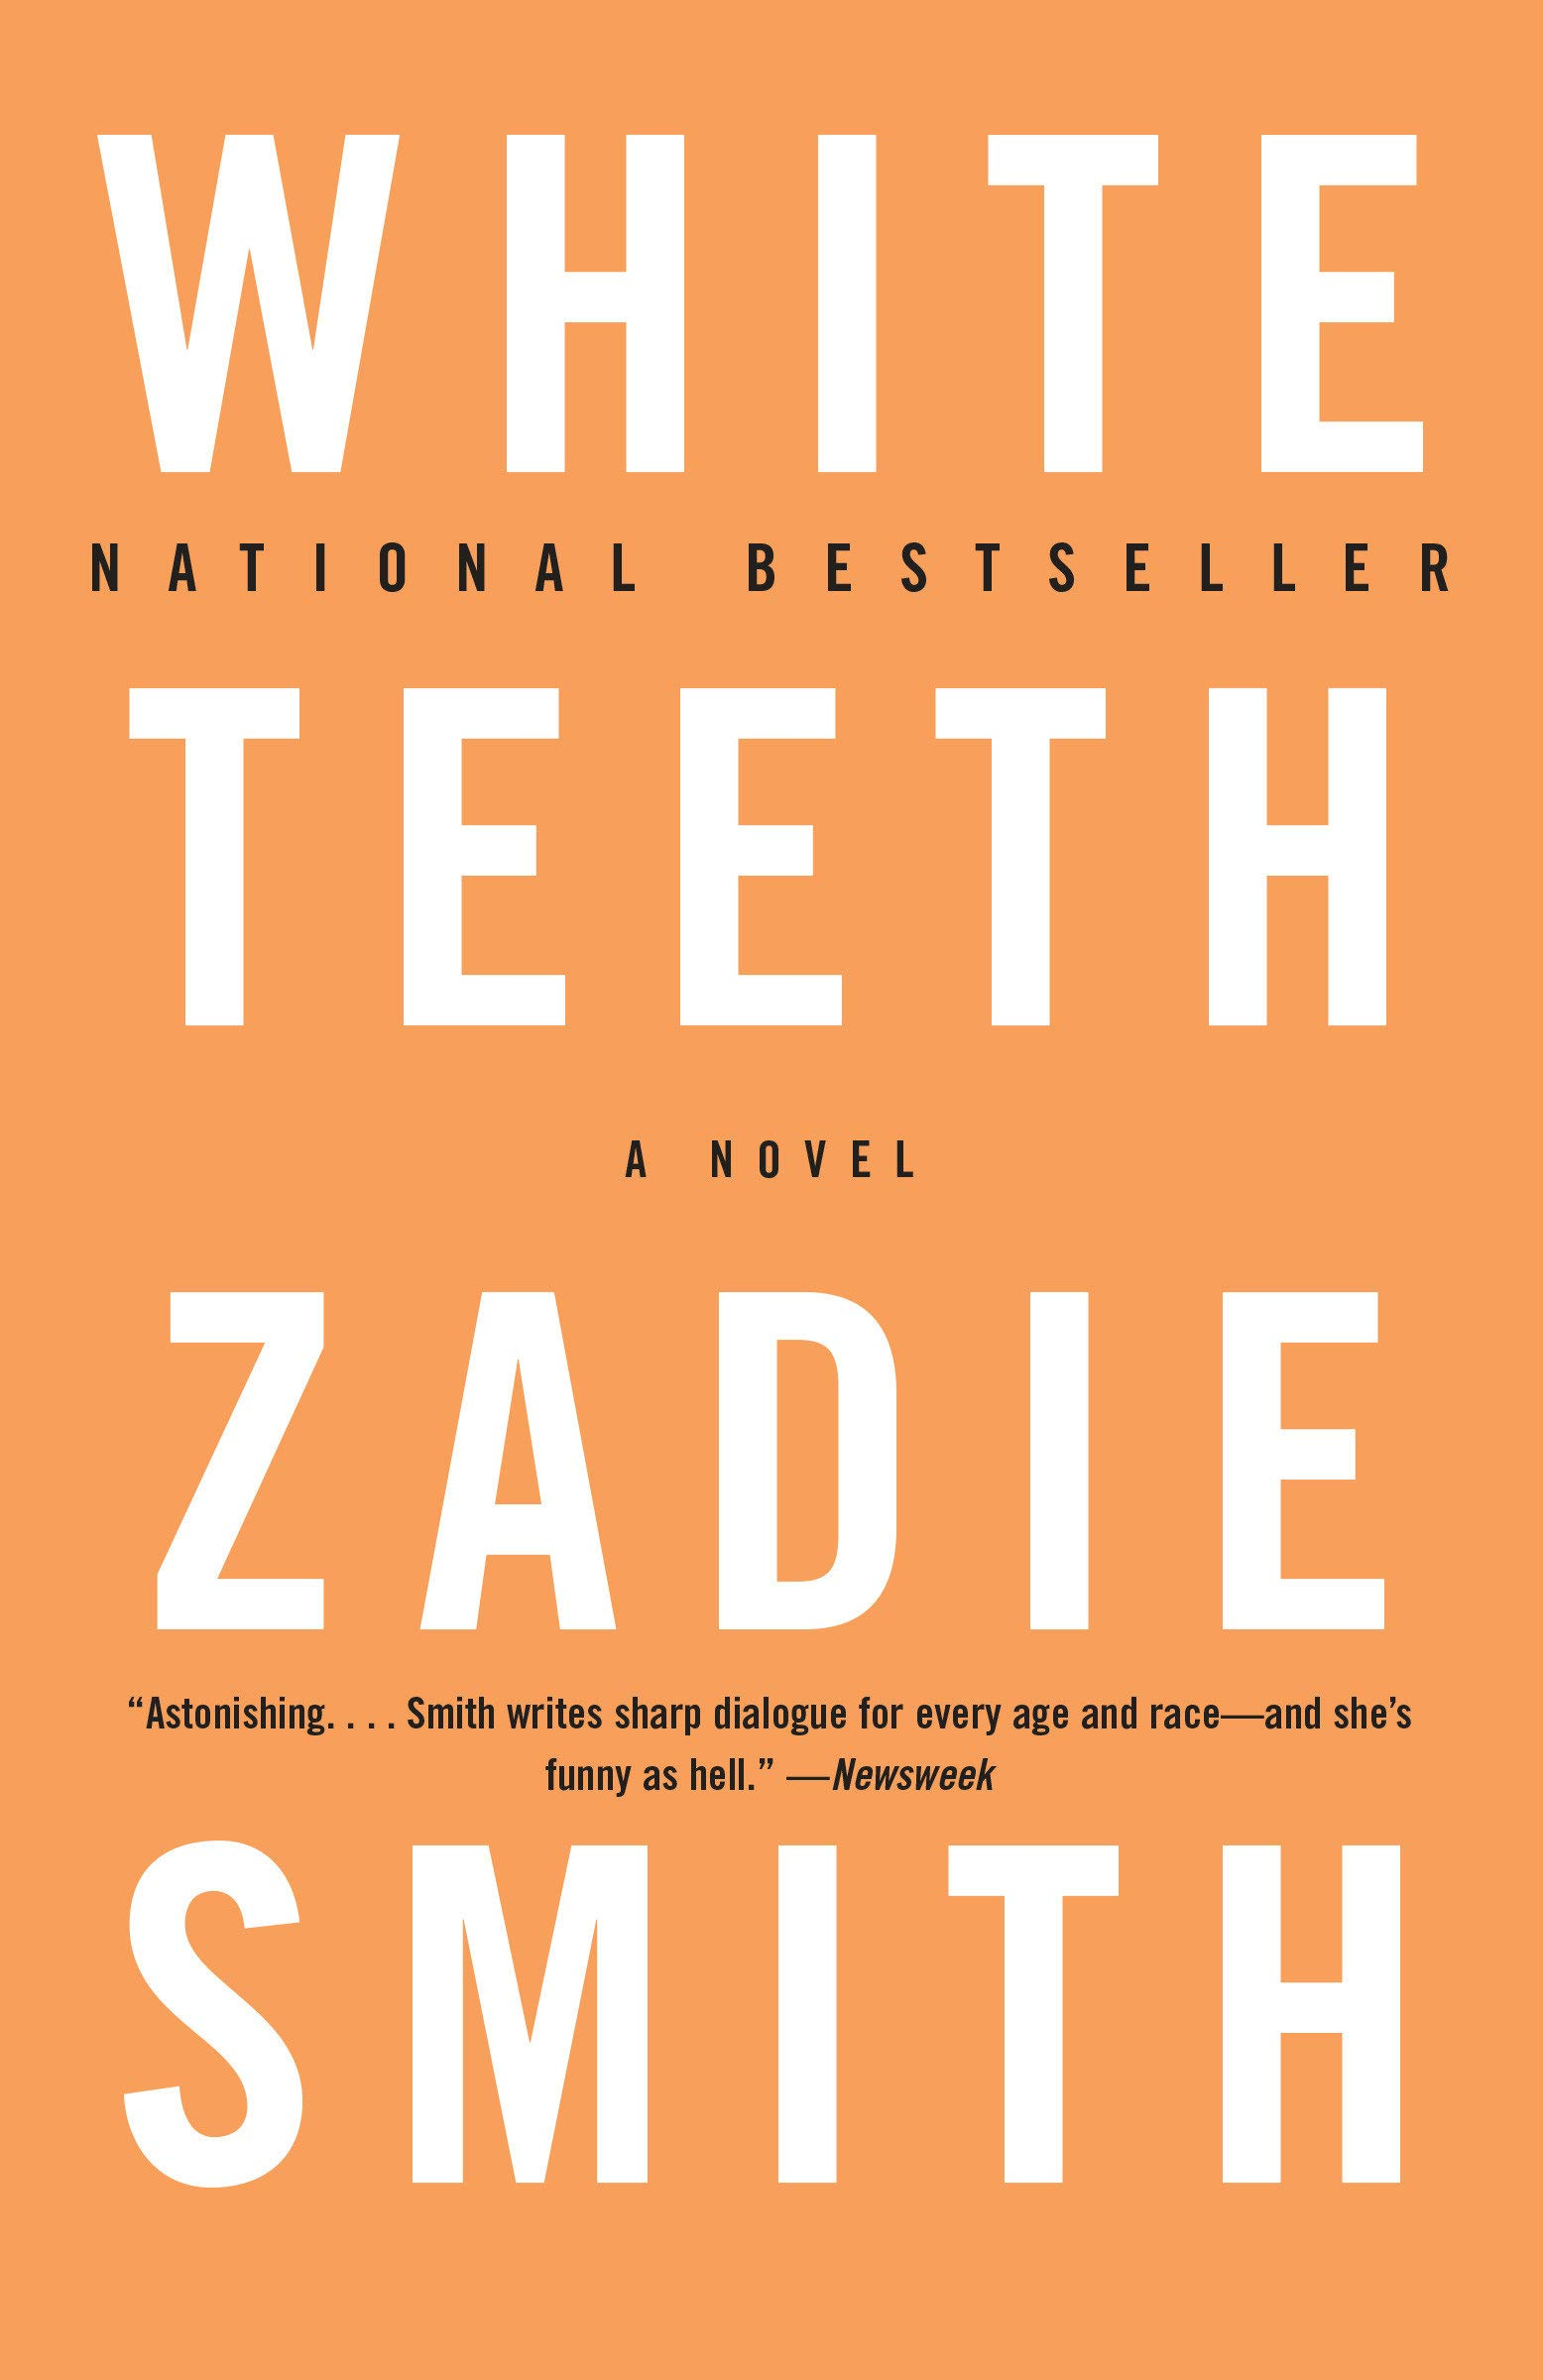 BSG #2: FUTUREMOUSE! / White Teeth - What is FutureMouse? Are our teeth a part of our identity? And who, for the love of god, is KEVIN? Find out the answers to these questions and more in this week's episode as the squad dives into Zadie Smith's 2000 novel White Teeth.